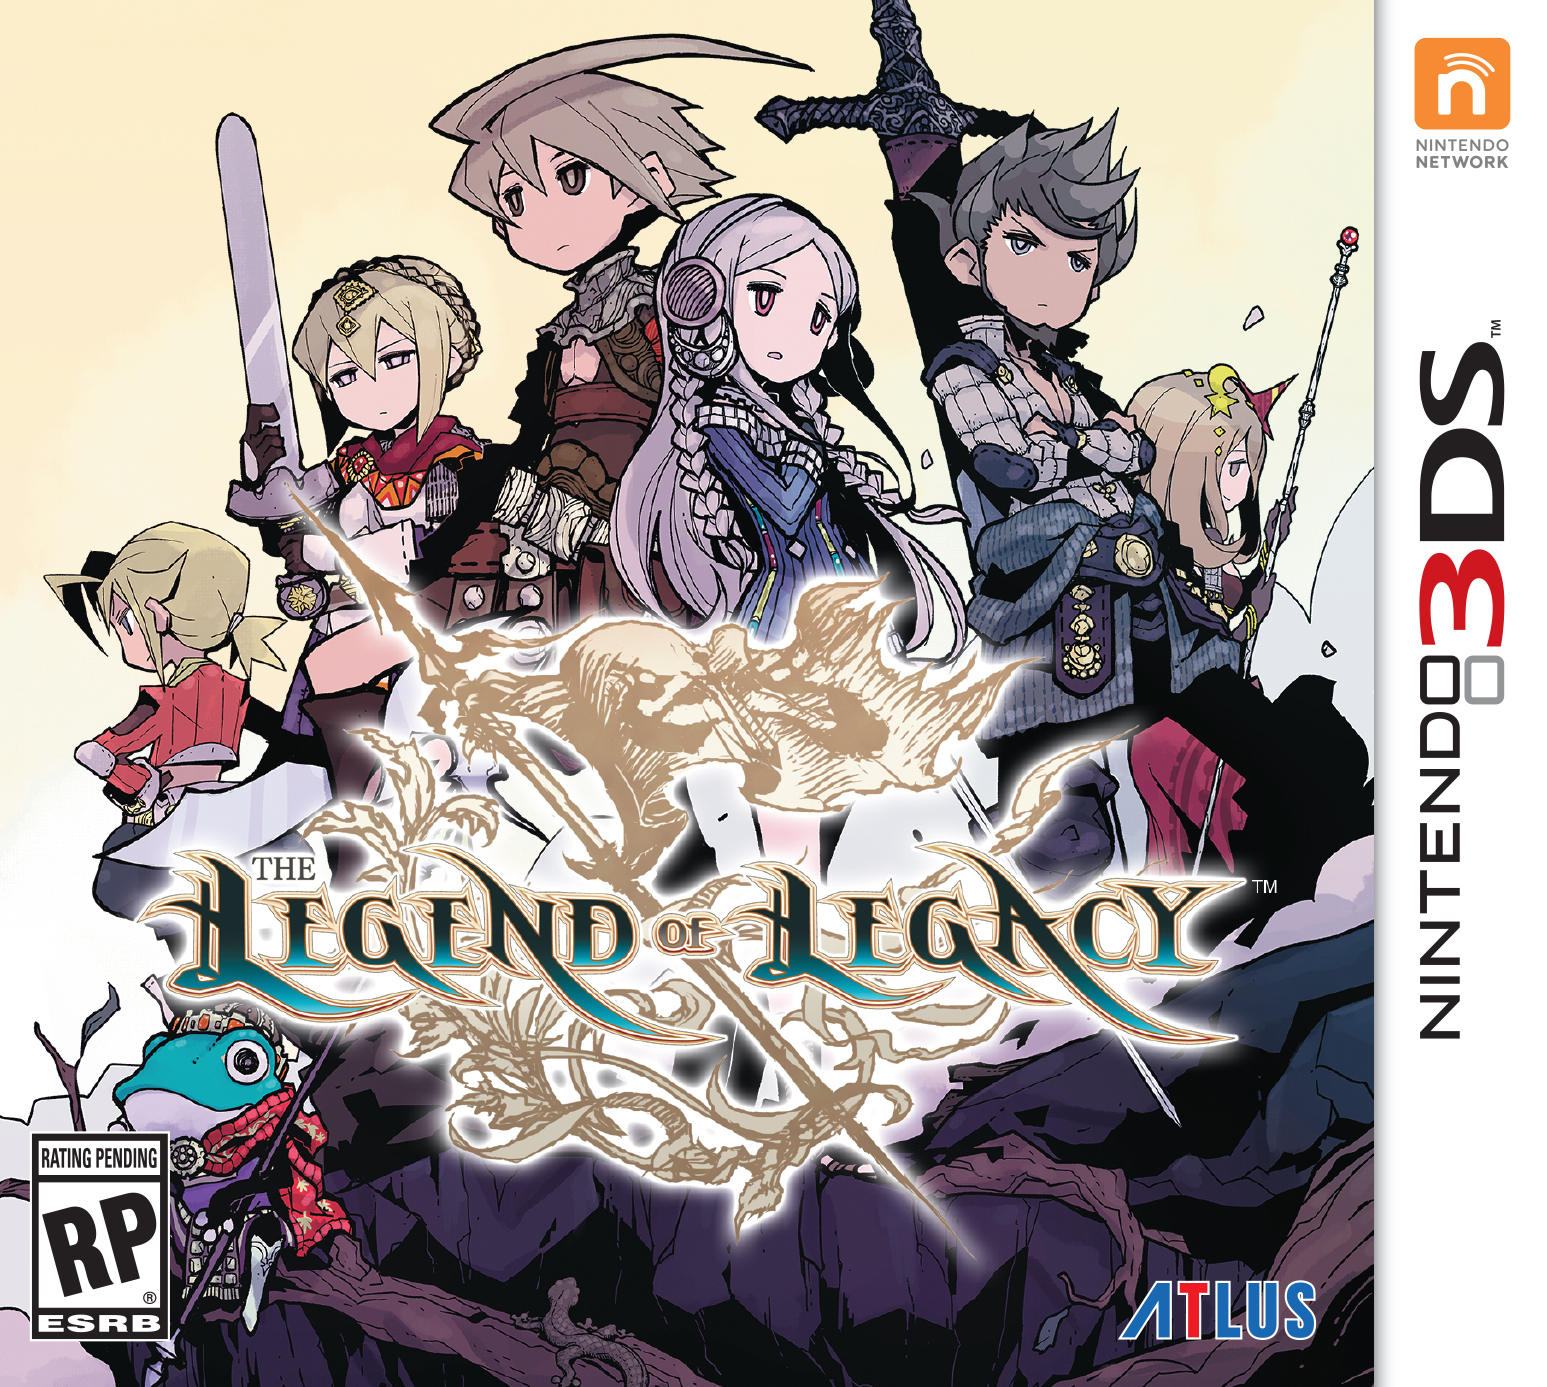 Box art - The Legend of Legacy